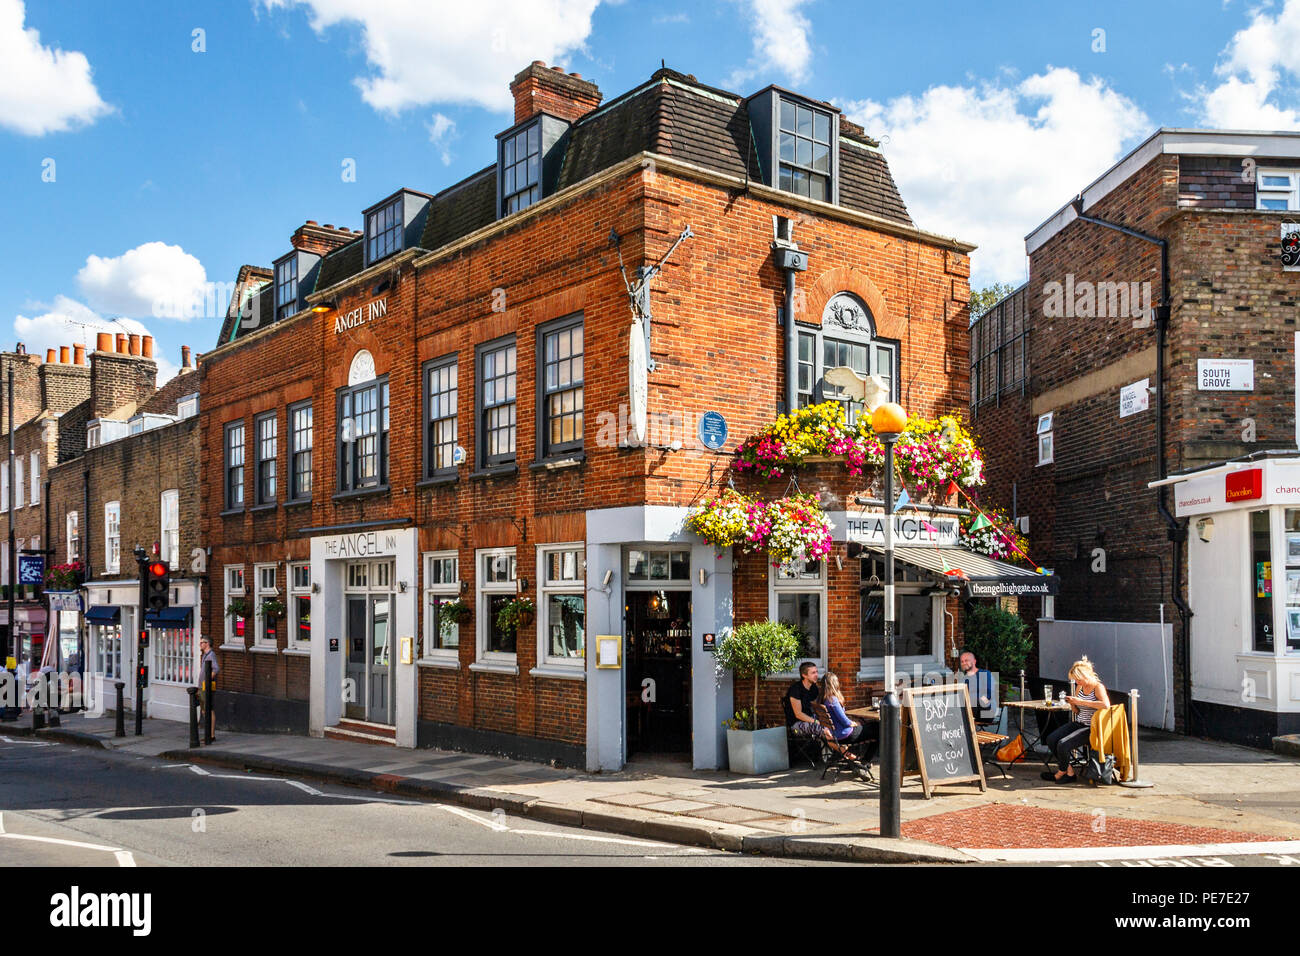 Customers drinking outside the historic Angel Inn in Highgate Village, London, UK during a heatwave - Stock Image